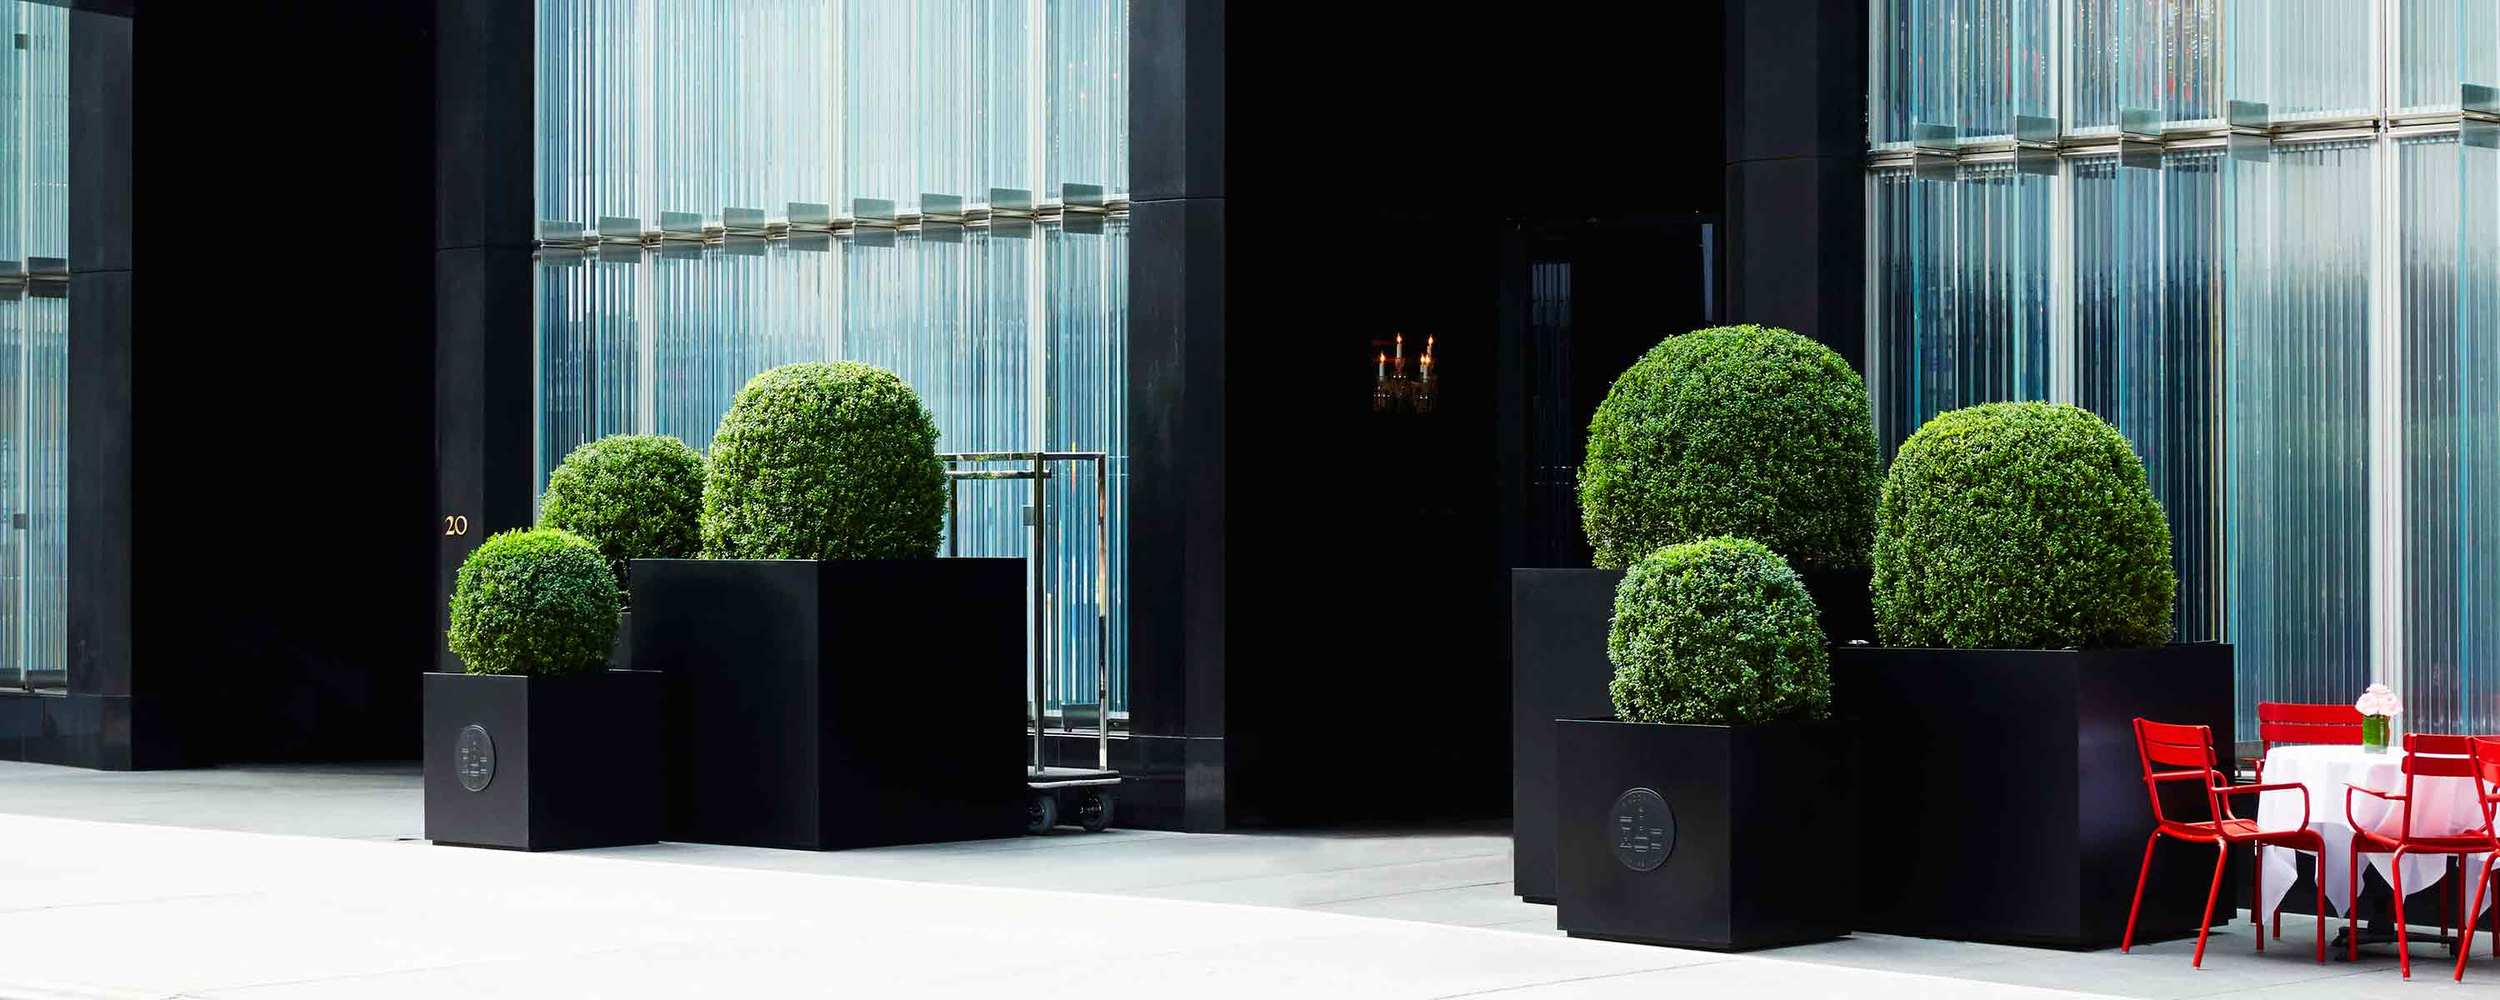 Baccarat Hotel NYC Harrison Green The Standard Planter Matte Black Powder Coated Aluminum